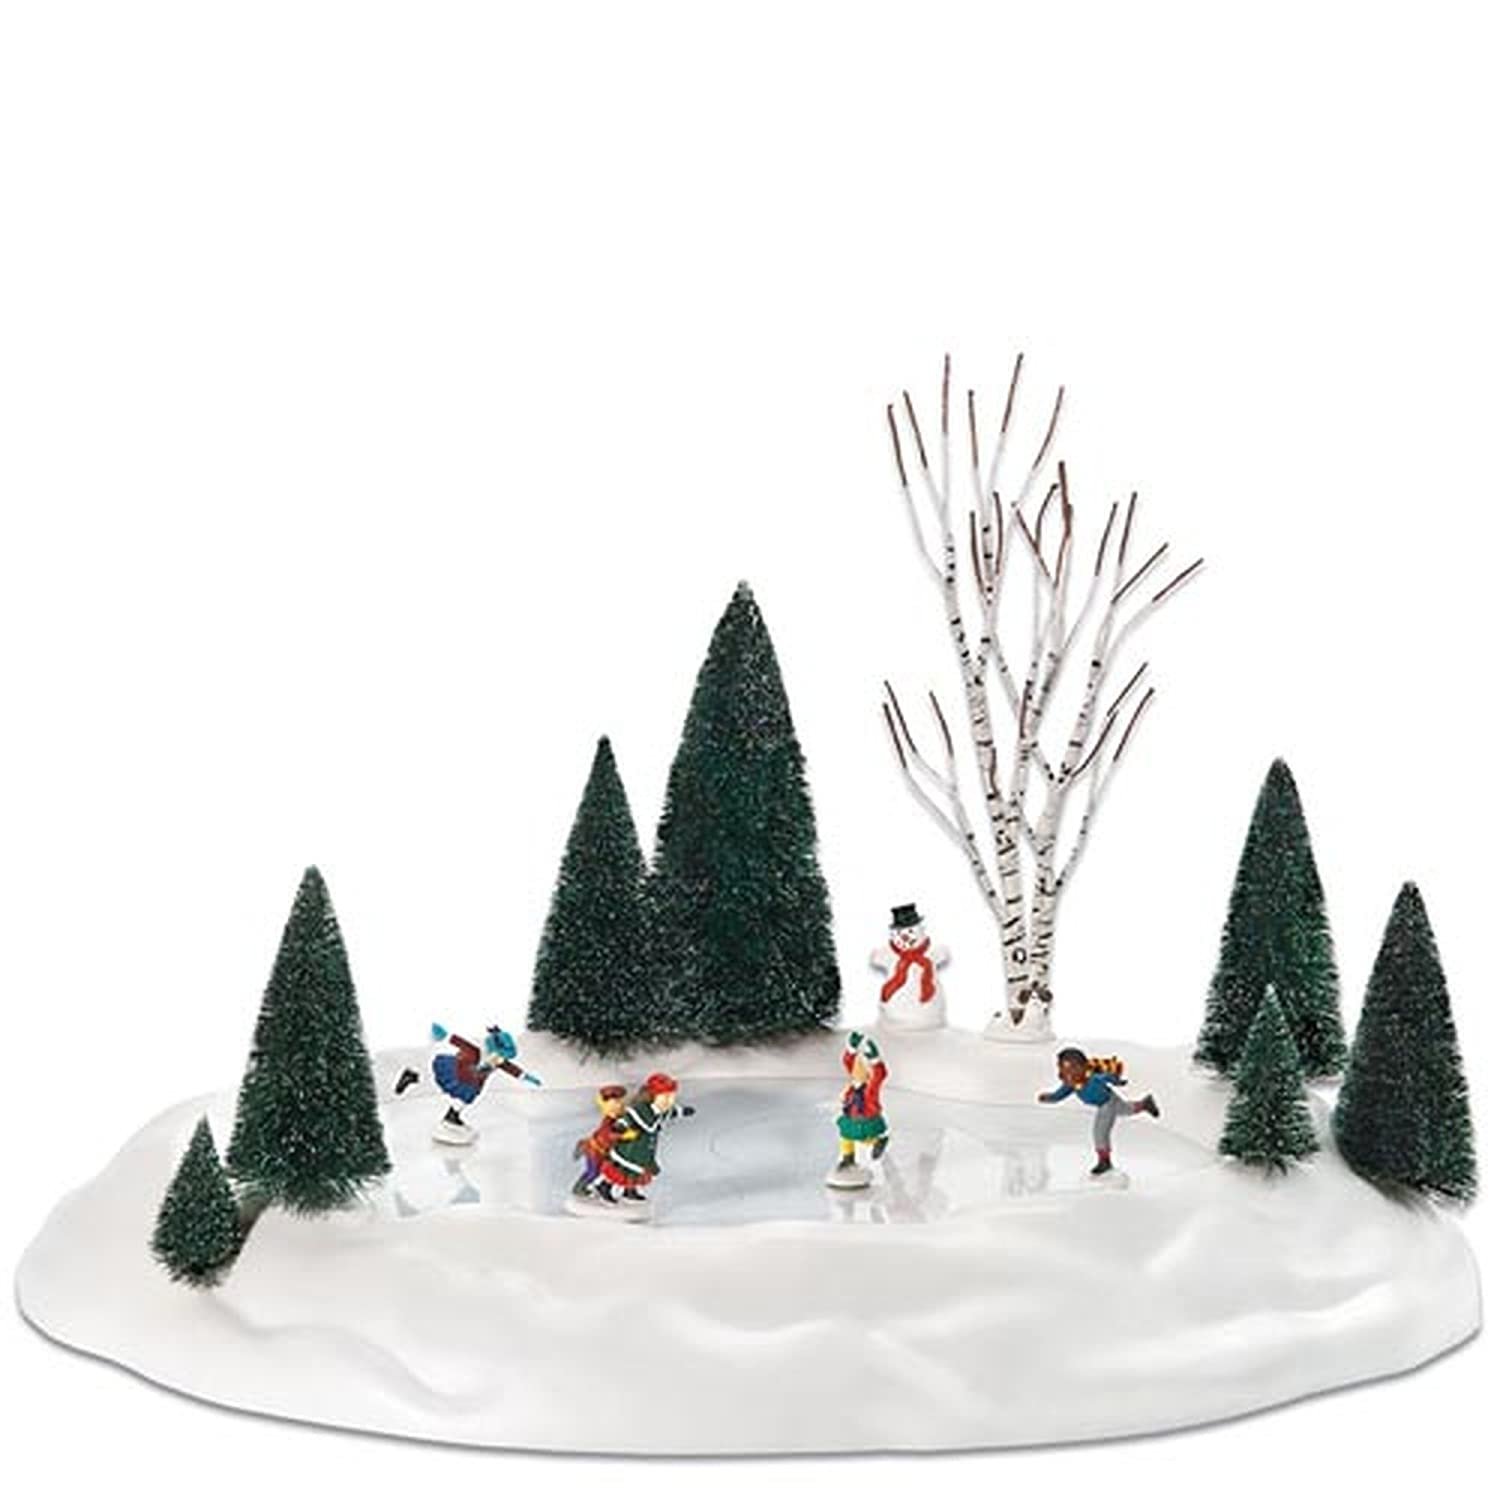 Amazon.com: Department 56 Animated Skating Pond: Home & Kitchen